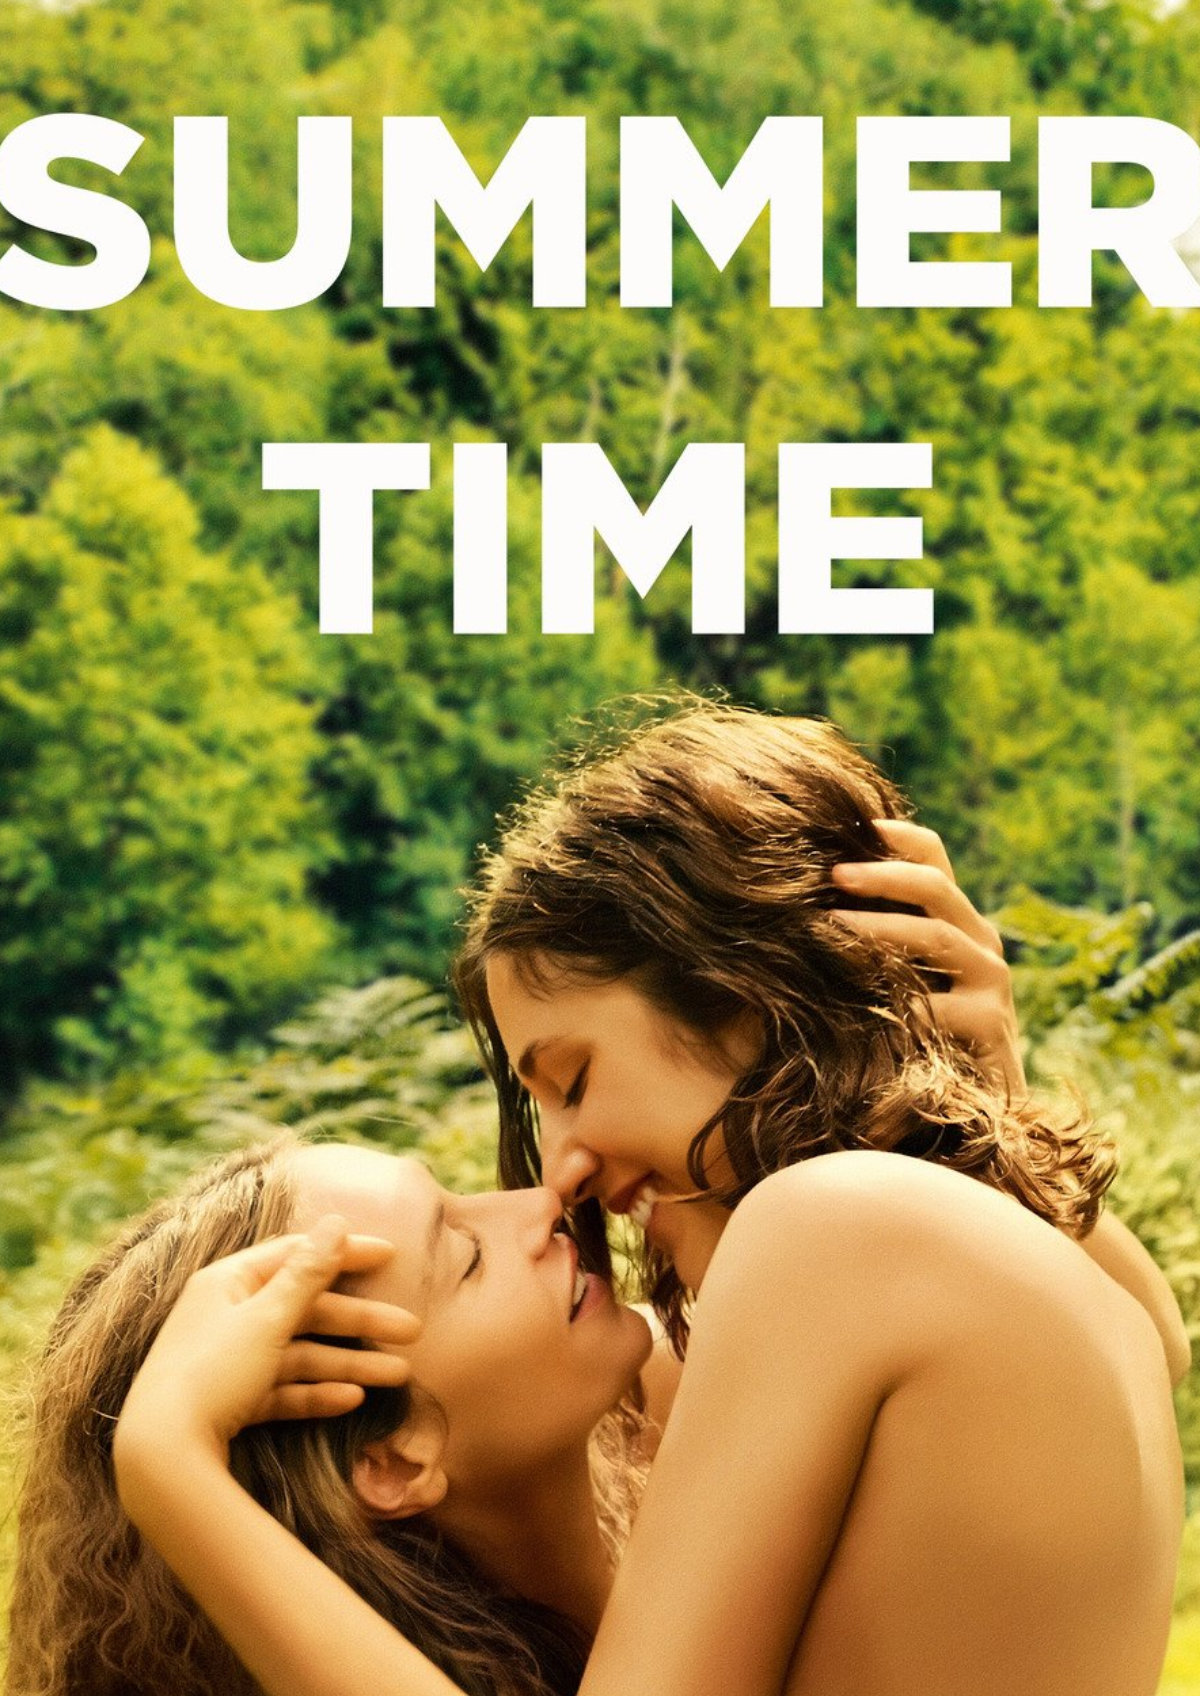 'Summertime' movie poster